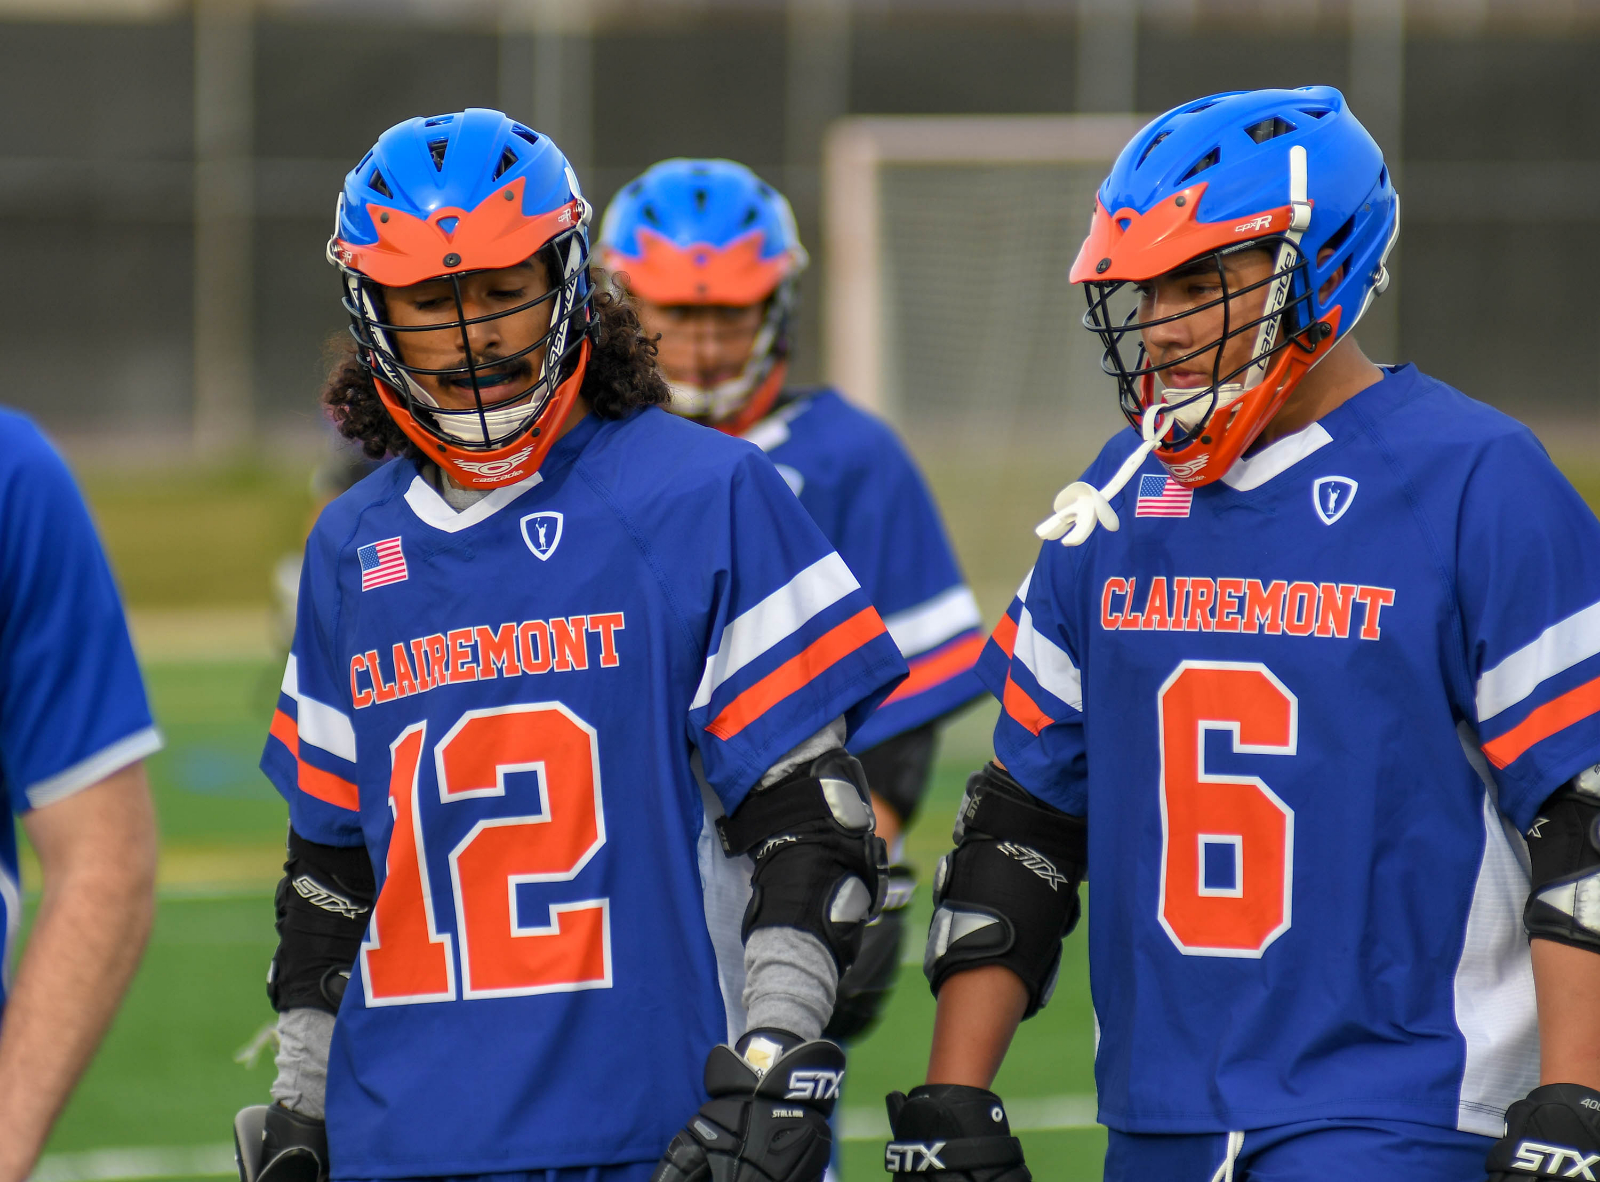 Boys Lacrosse Meeting Wednesday 1/29 Rm 207 Lunch!